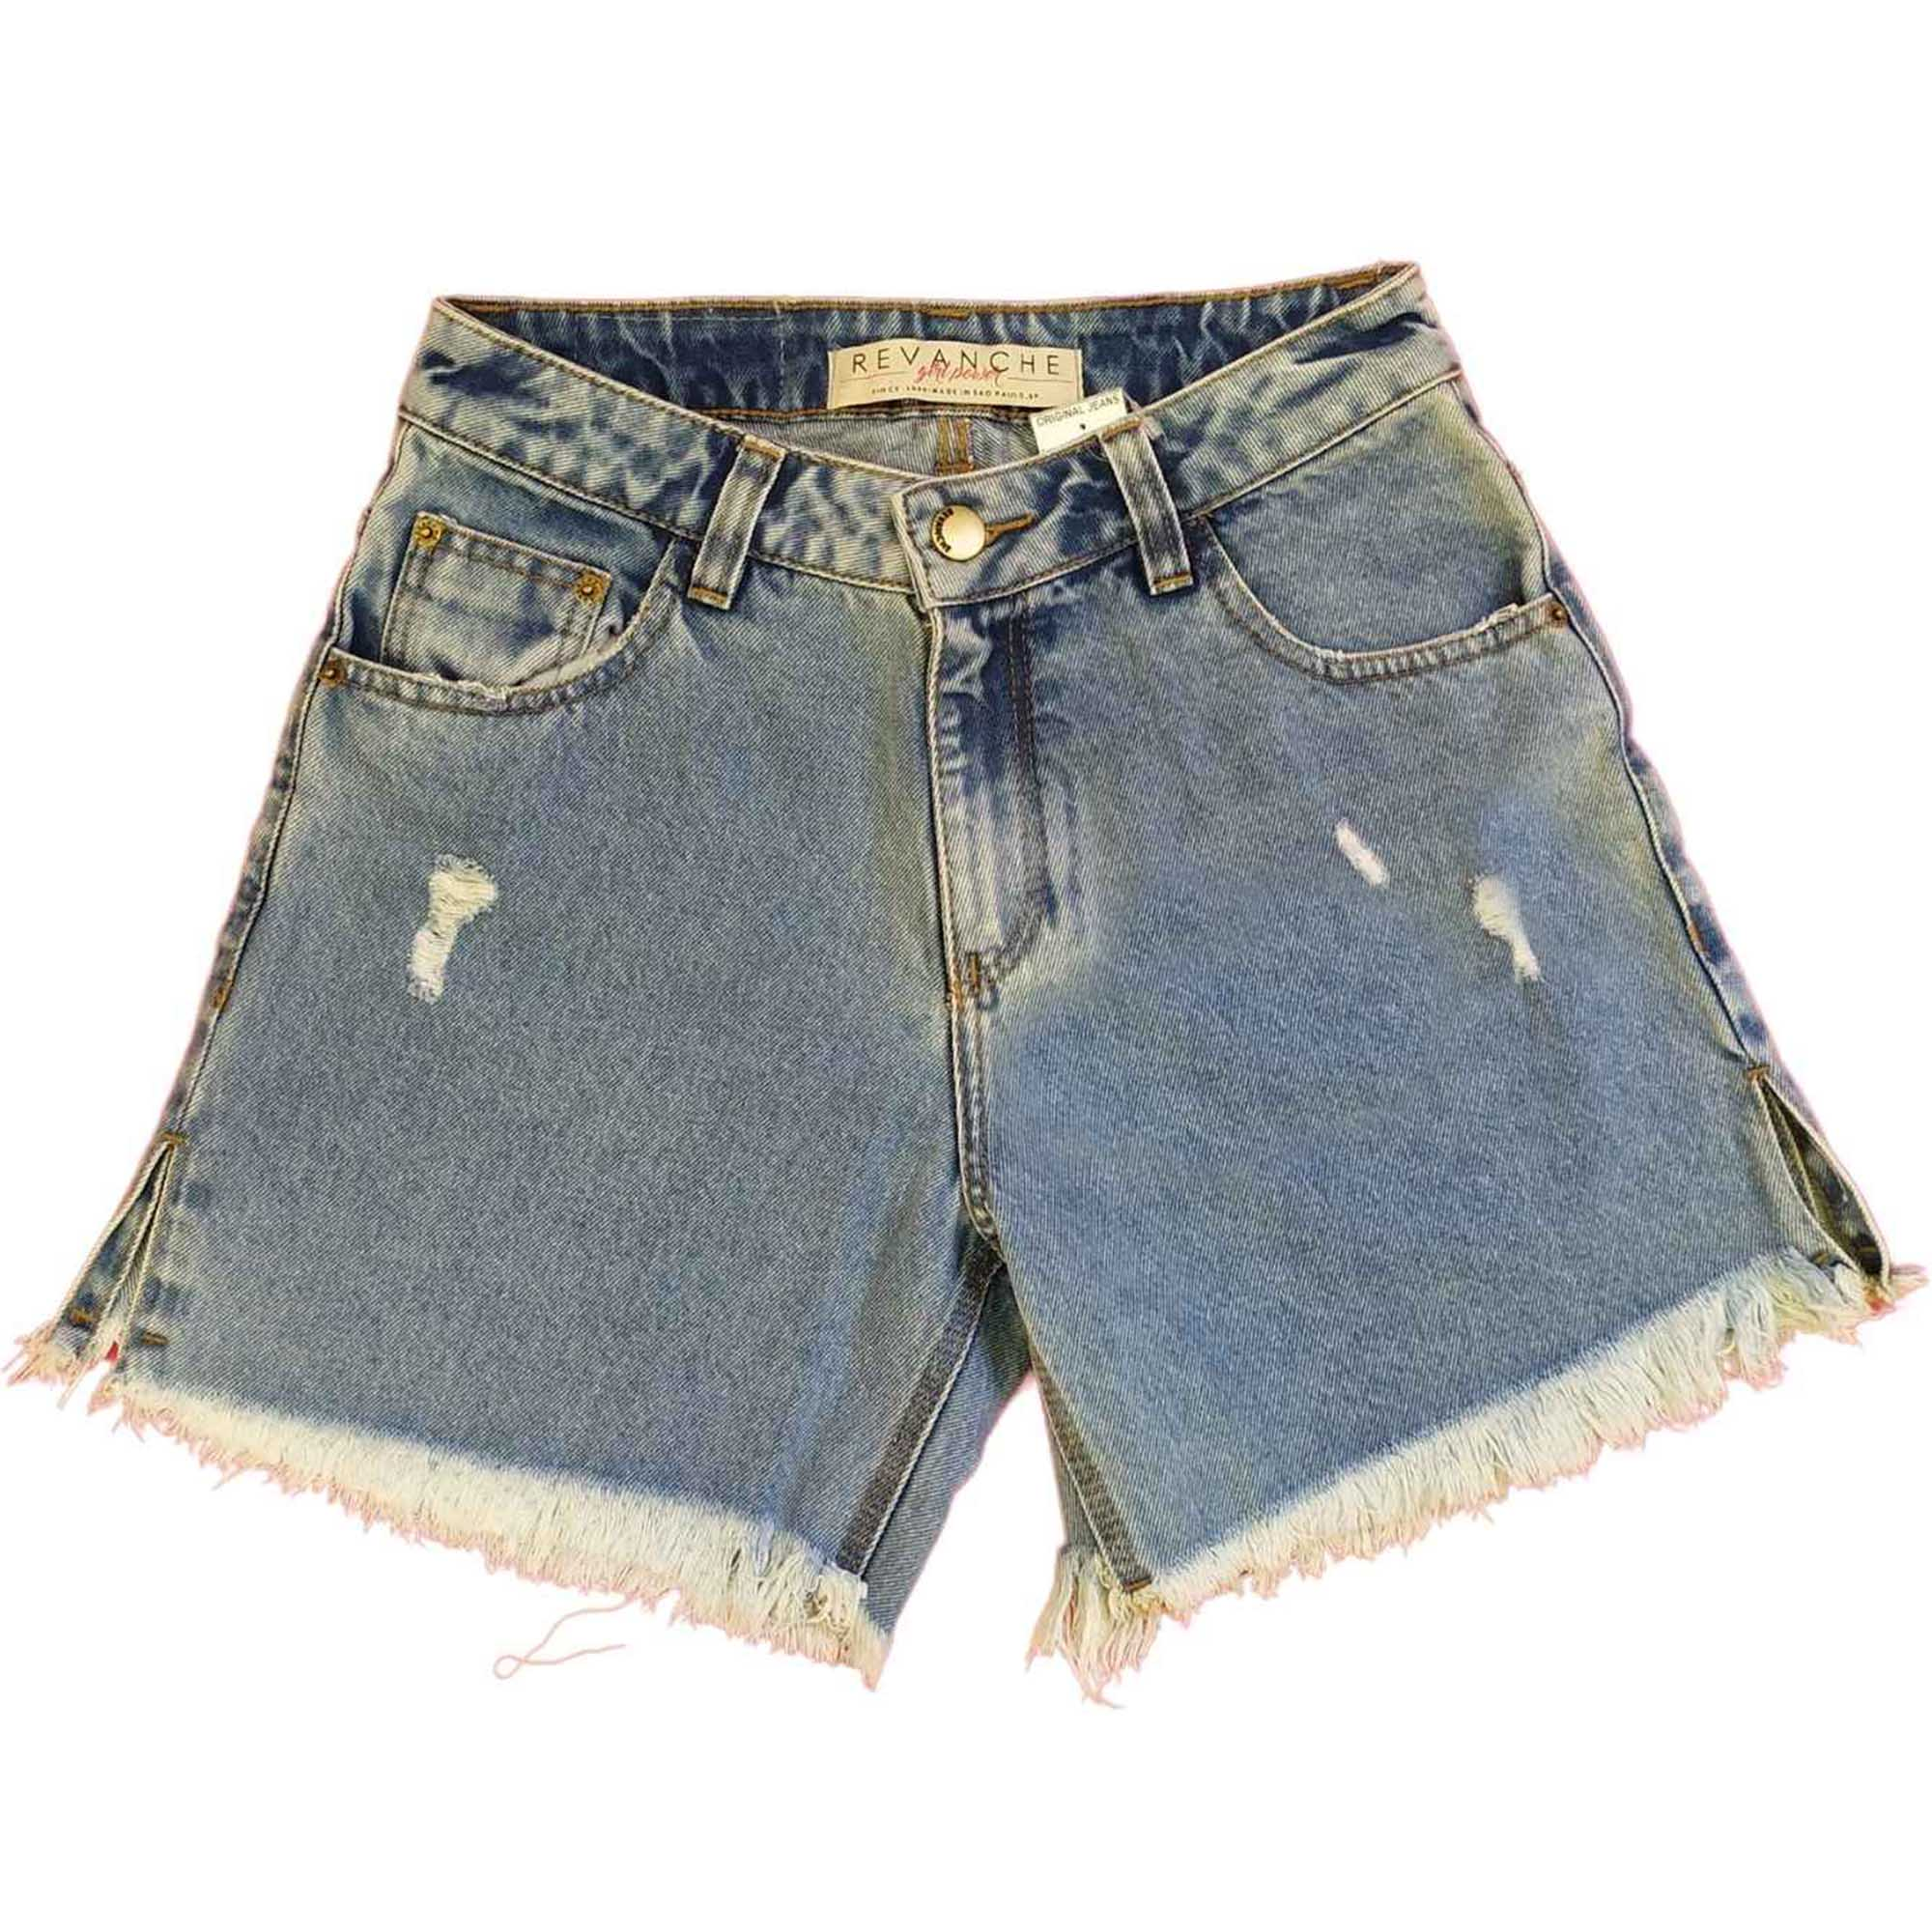 Short Revanche 34972